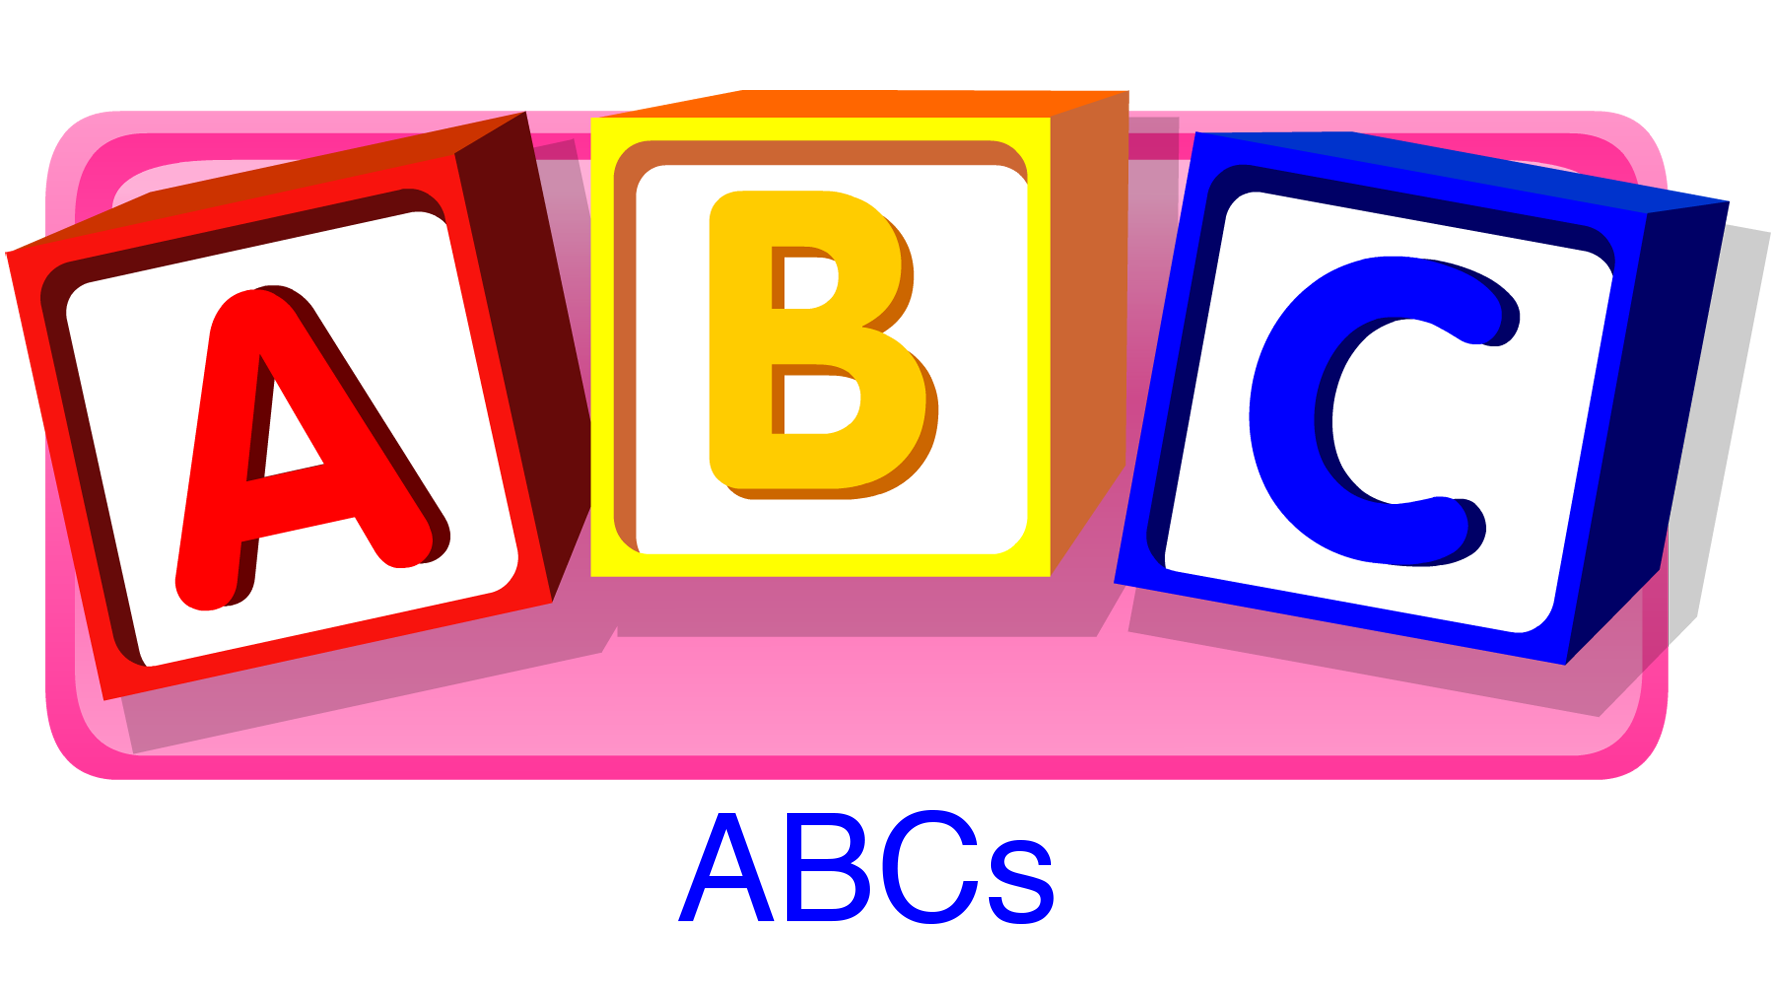 In The Starfall Abcs Children Learn The Upper And